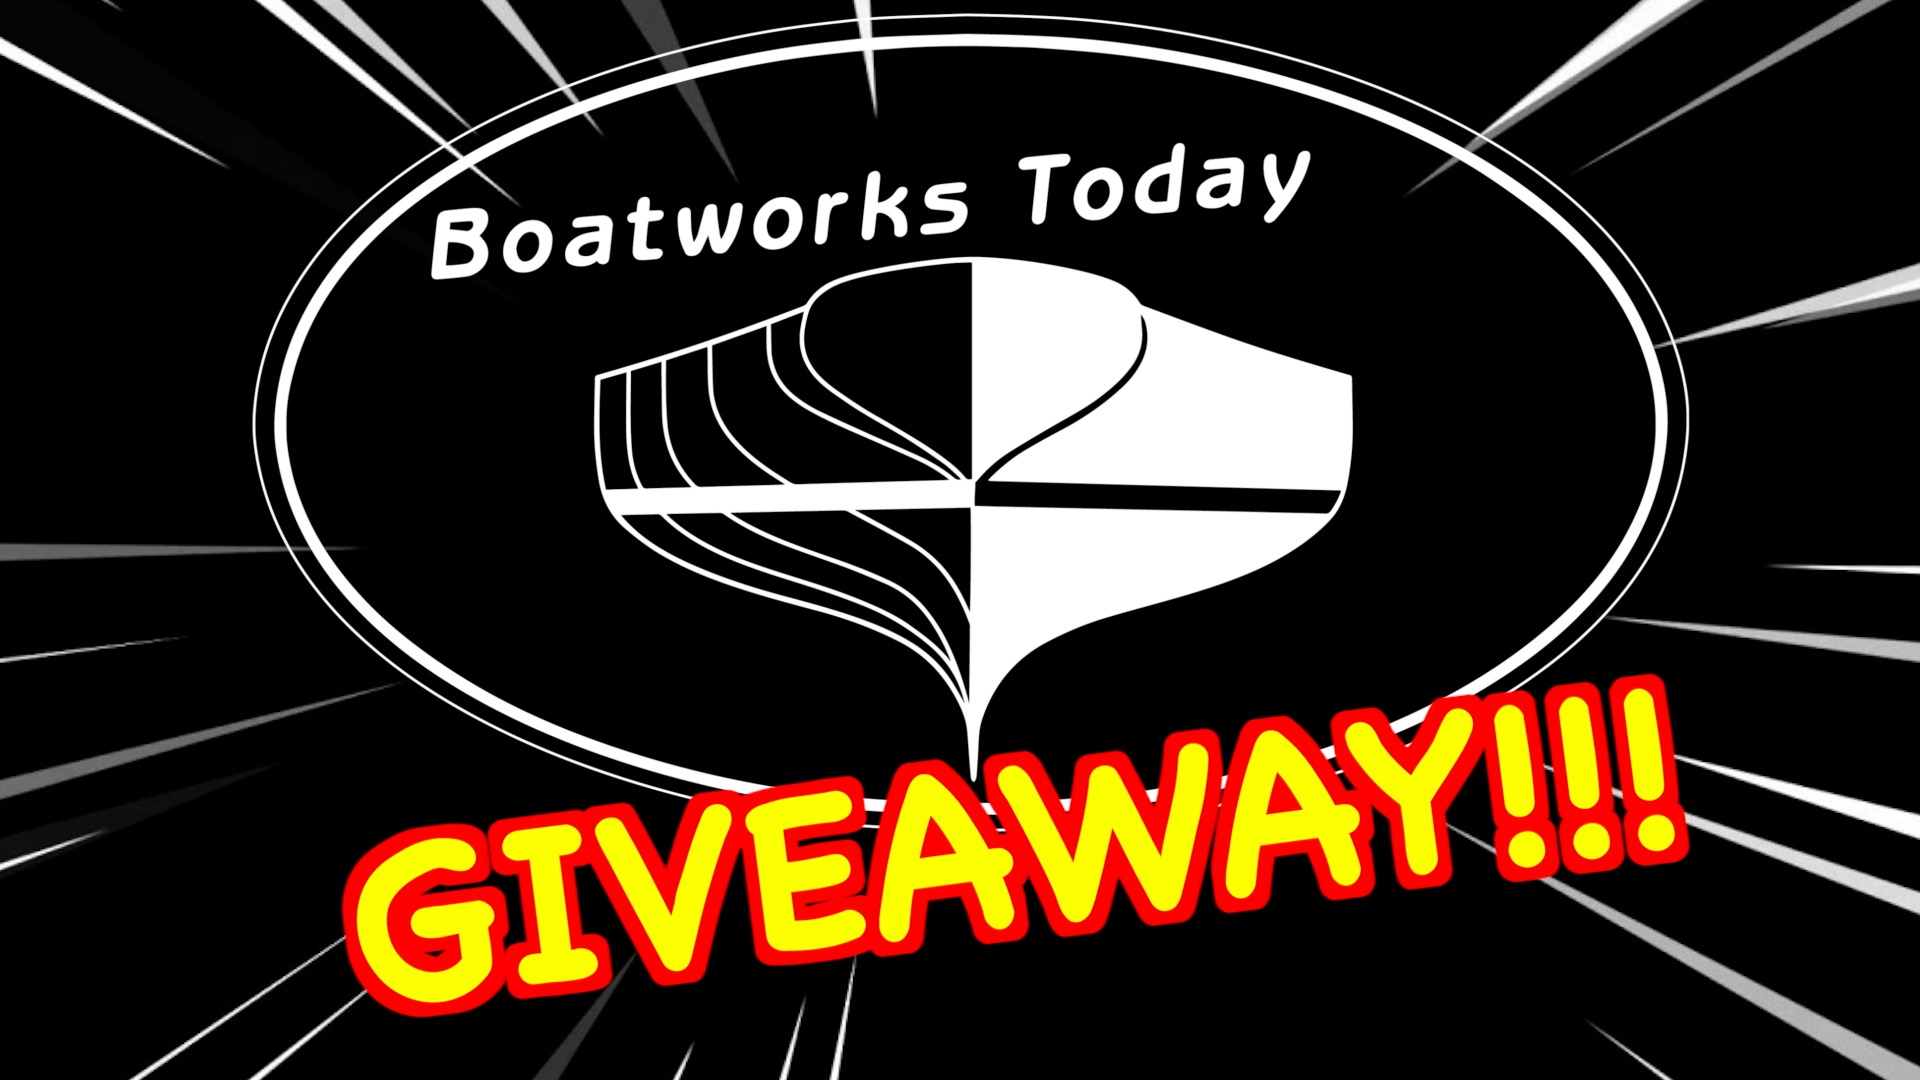 Boatworks Today And Totalboat Giveaway!